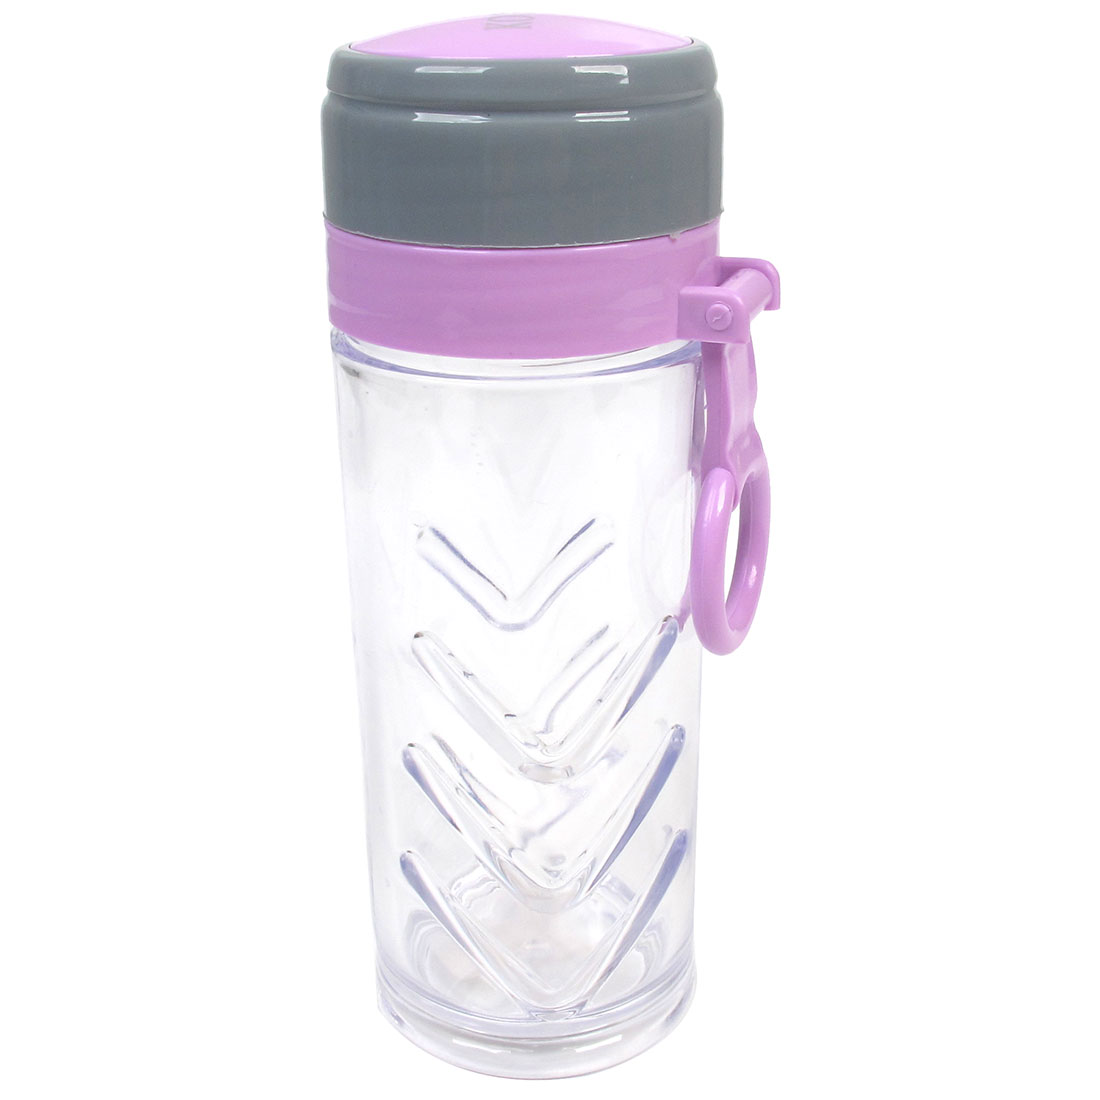 Portable Purple Gray Lid Plastic Clear Water Tea Bottle Cup Holder 220ml